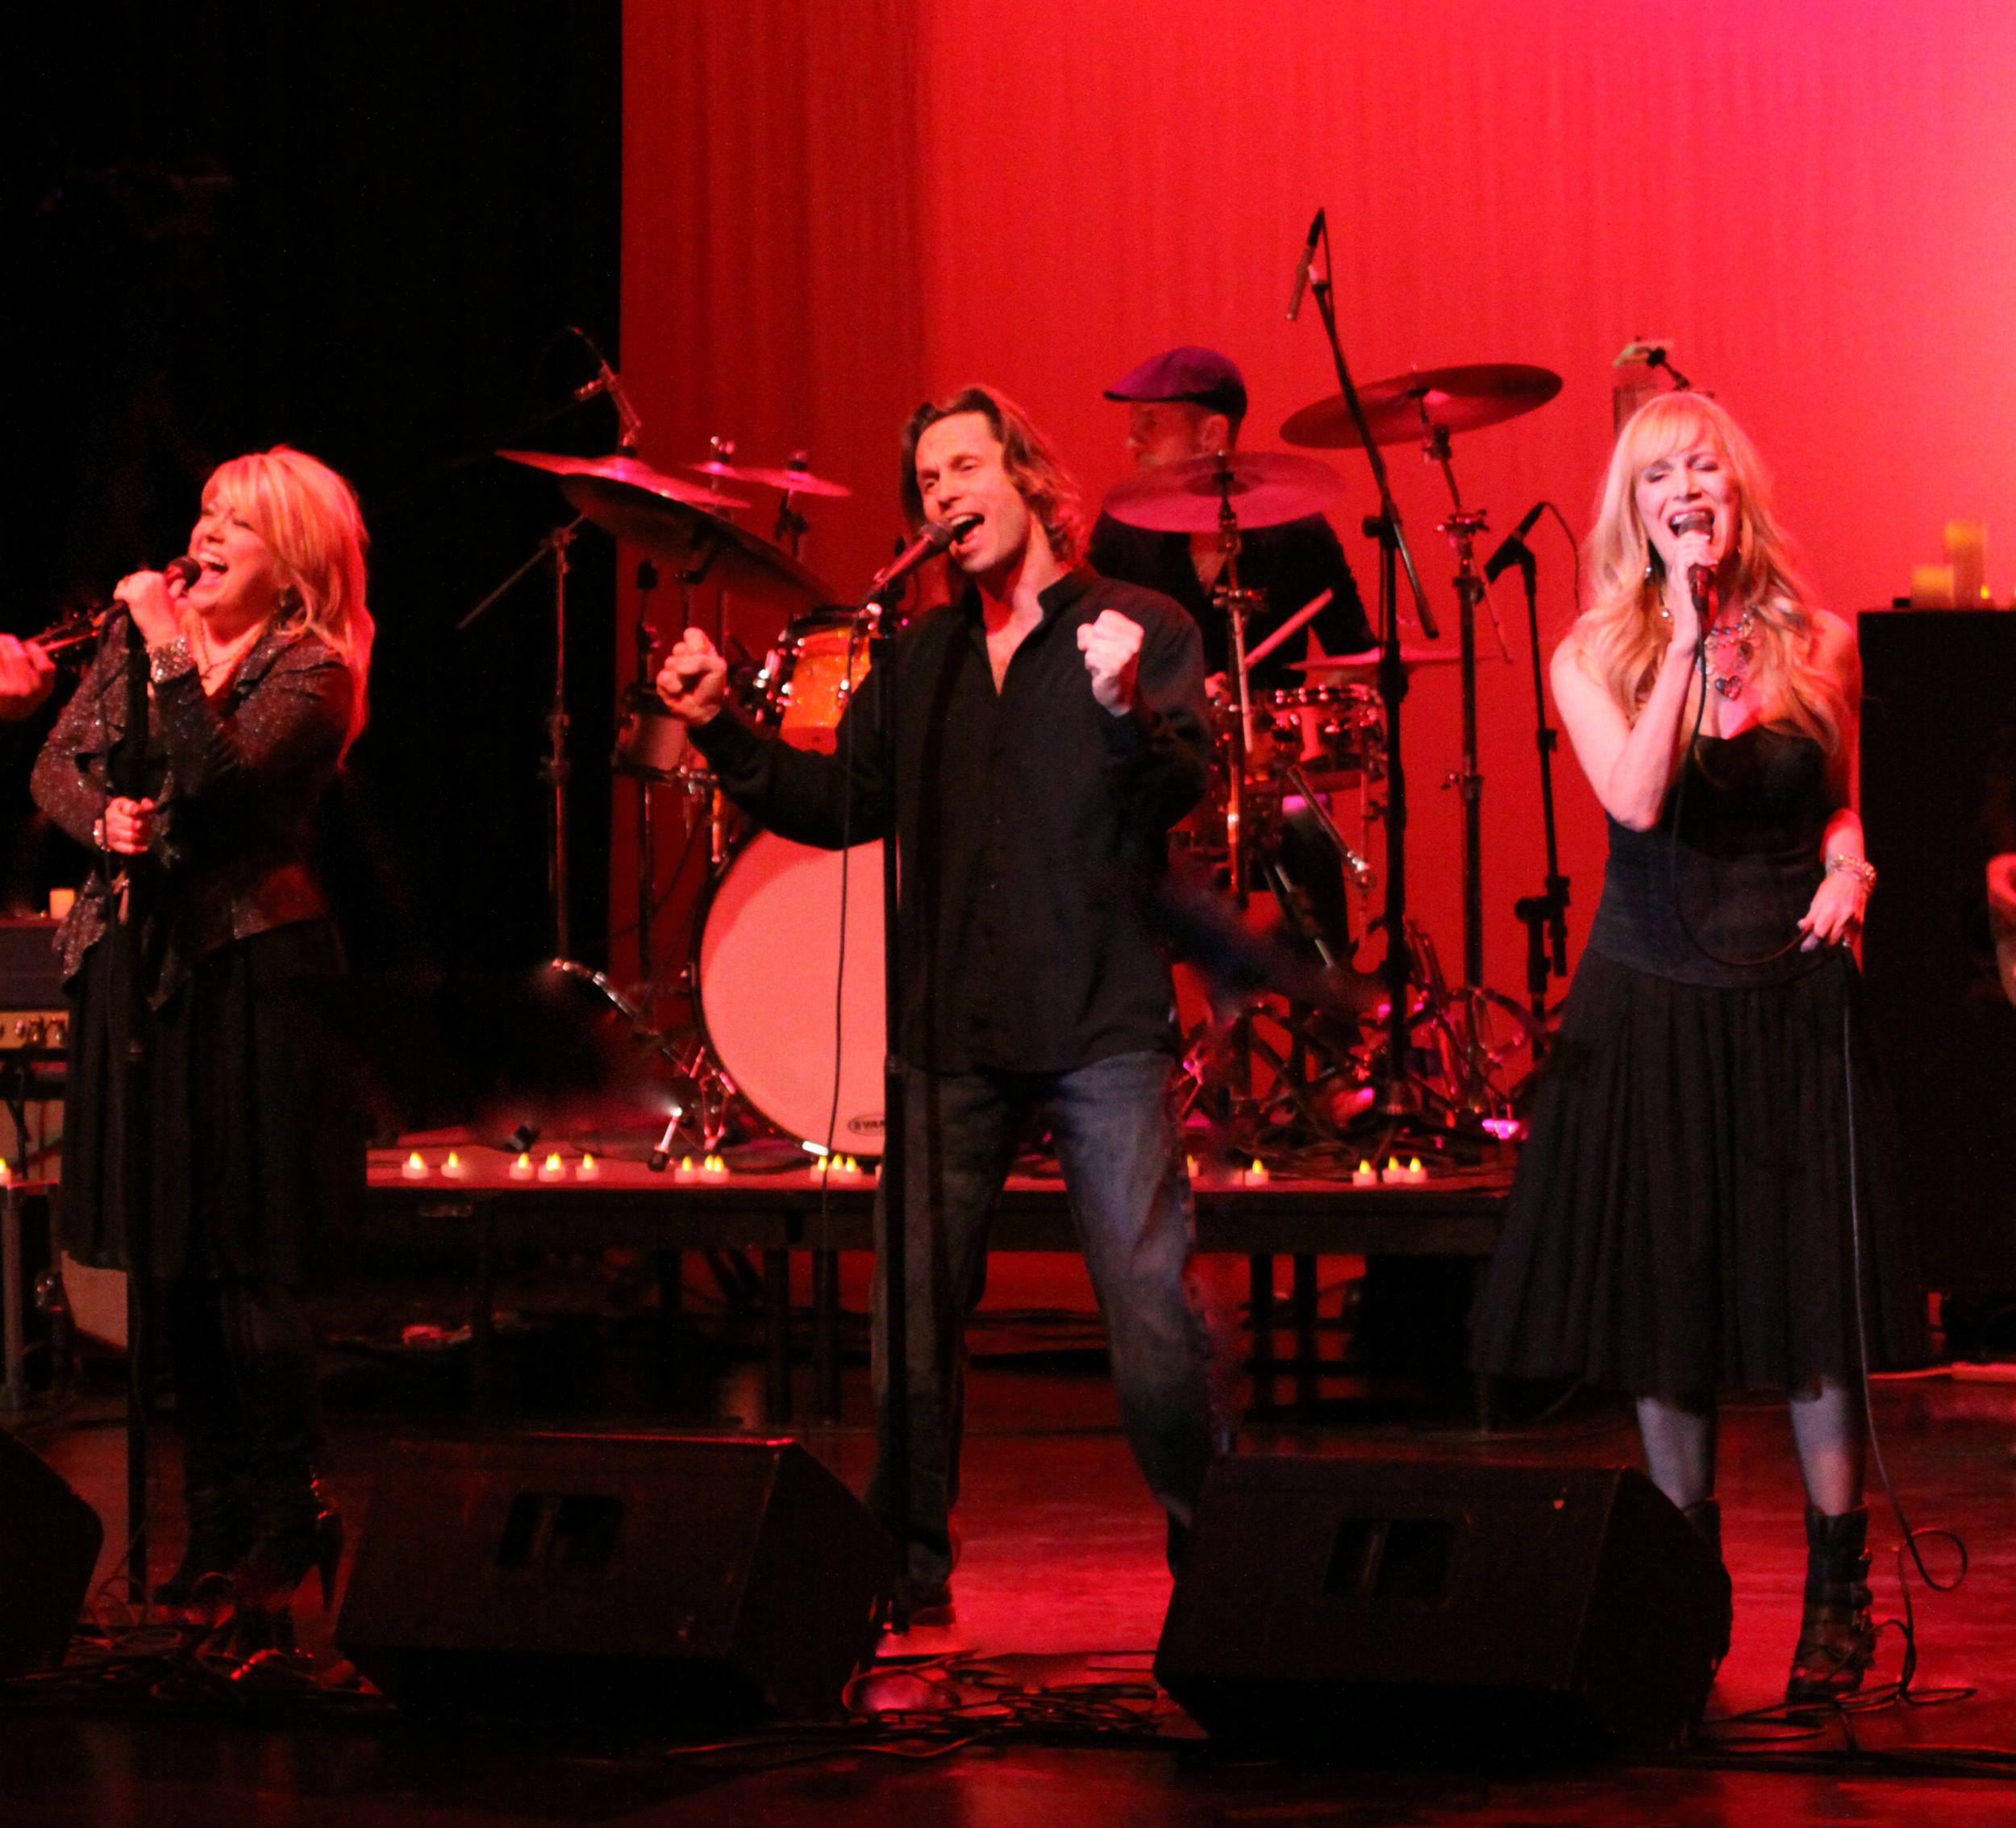 SOLD OUT performance at The Paramount Theater in St. Cloud, MN.